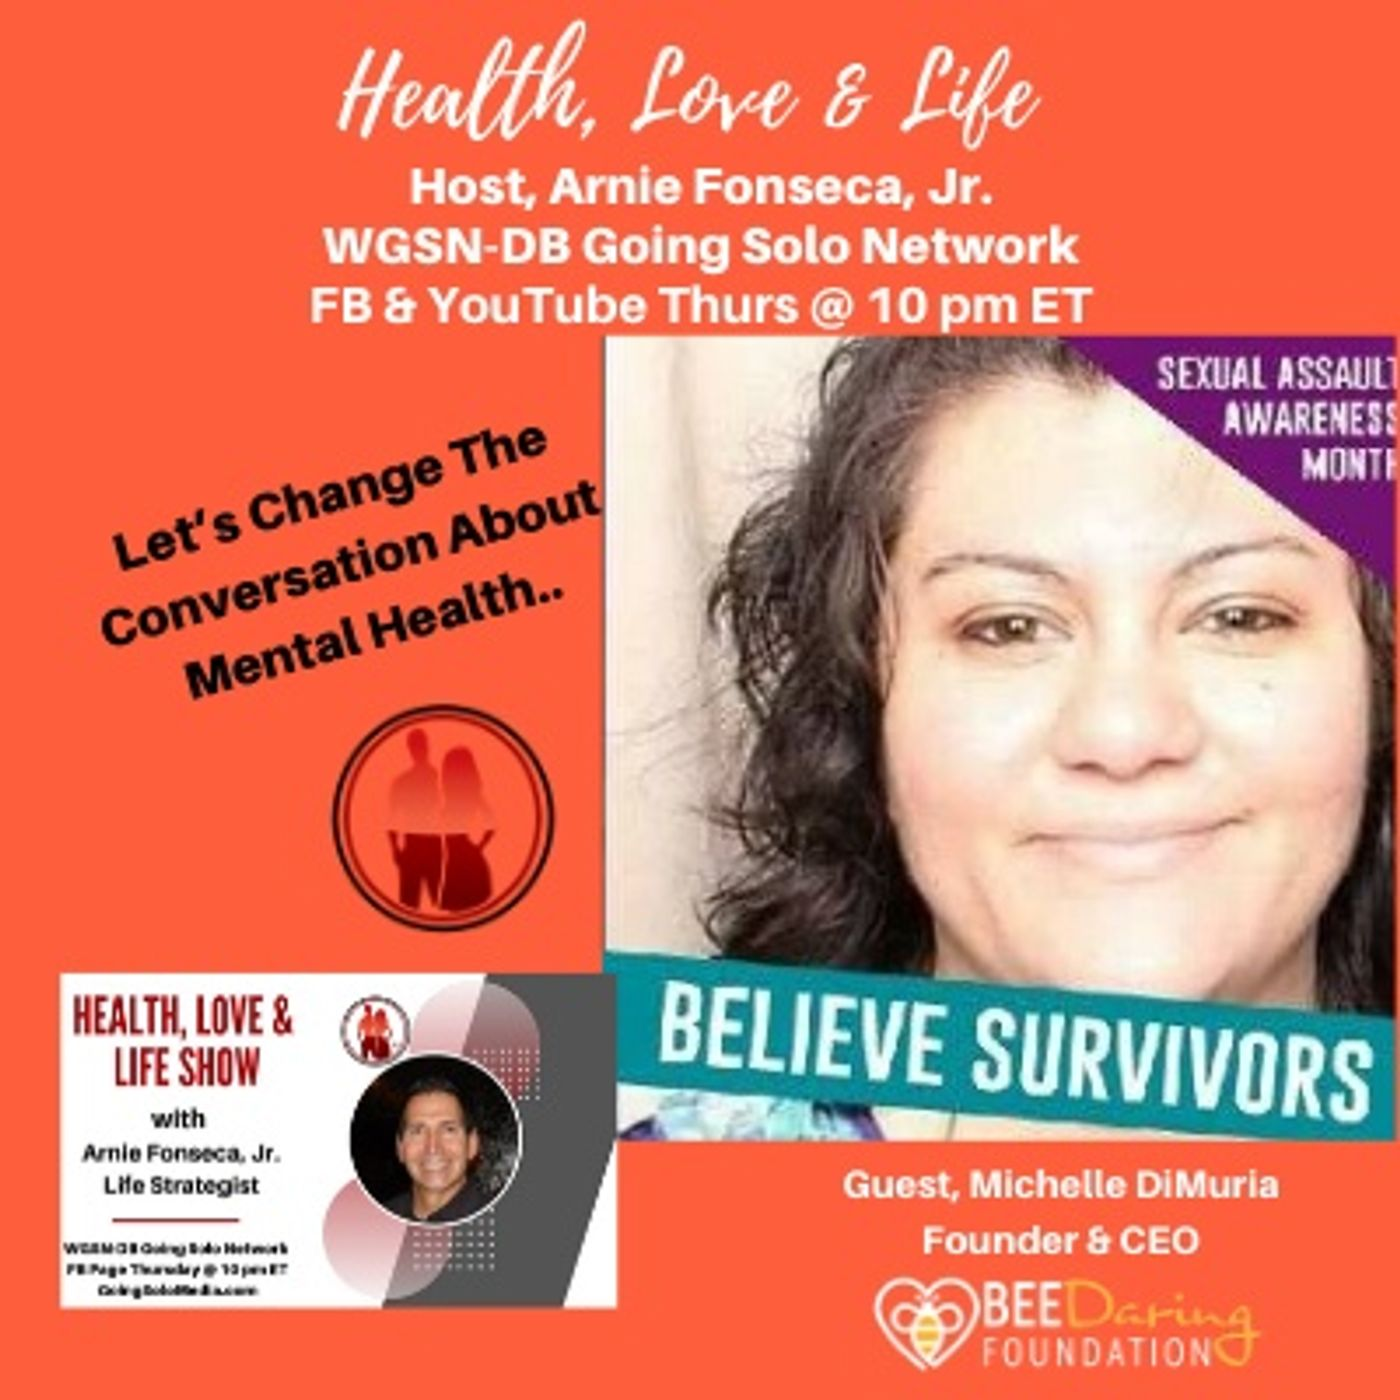 Let's Change The Conversation About Mental Health